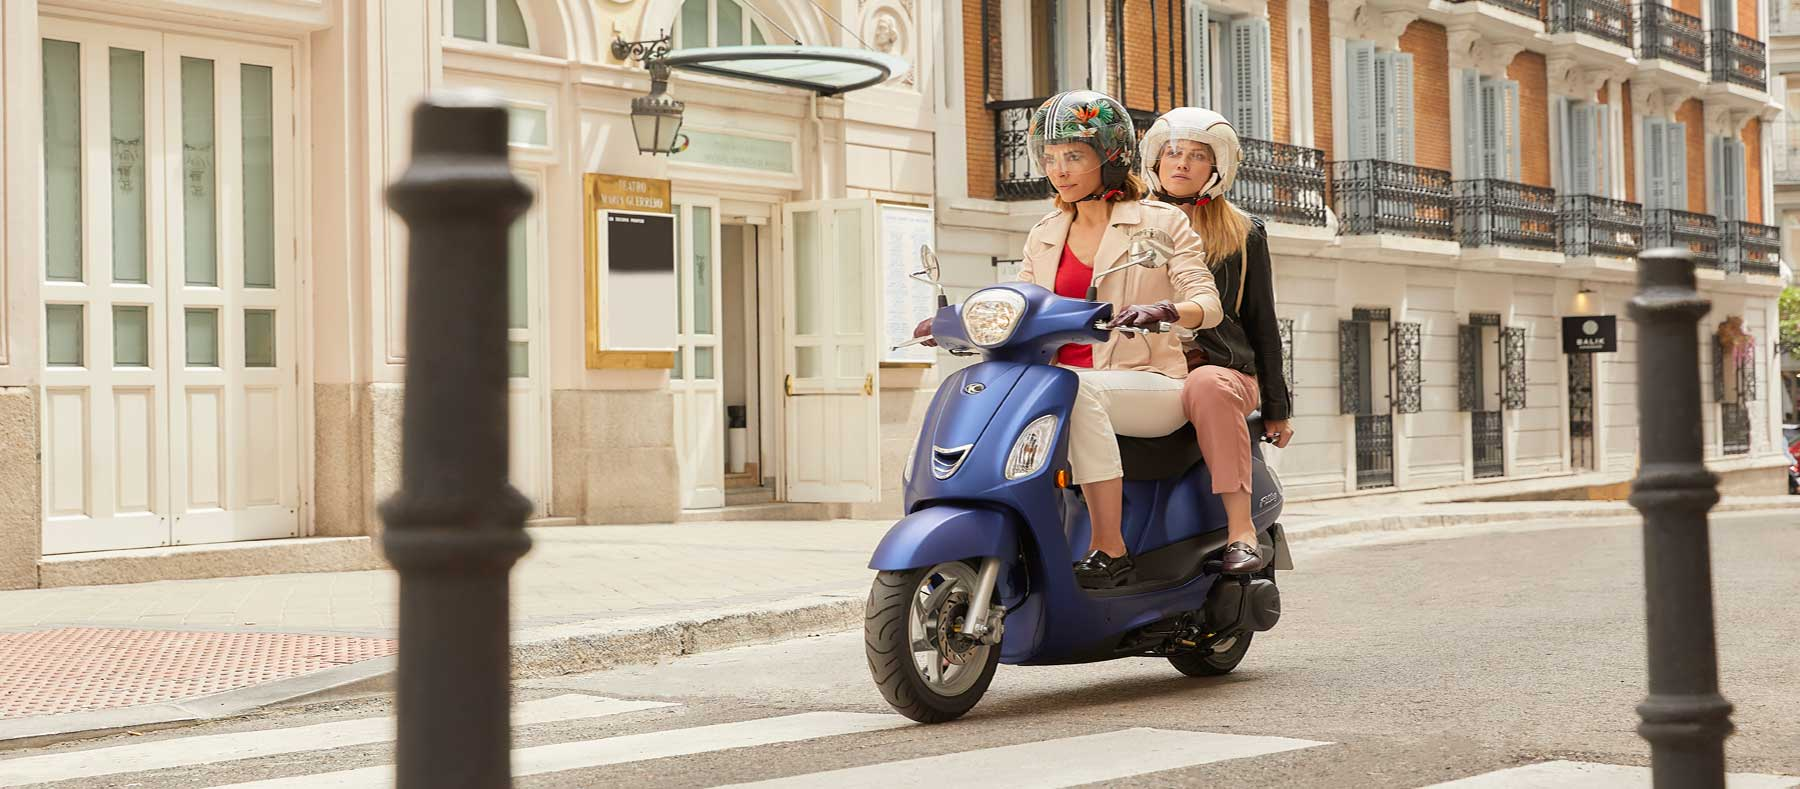 kymco-filly-125-2-Home-1